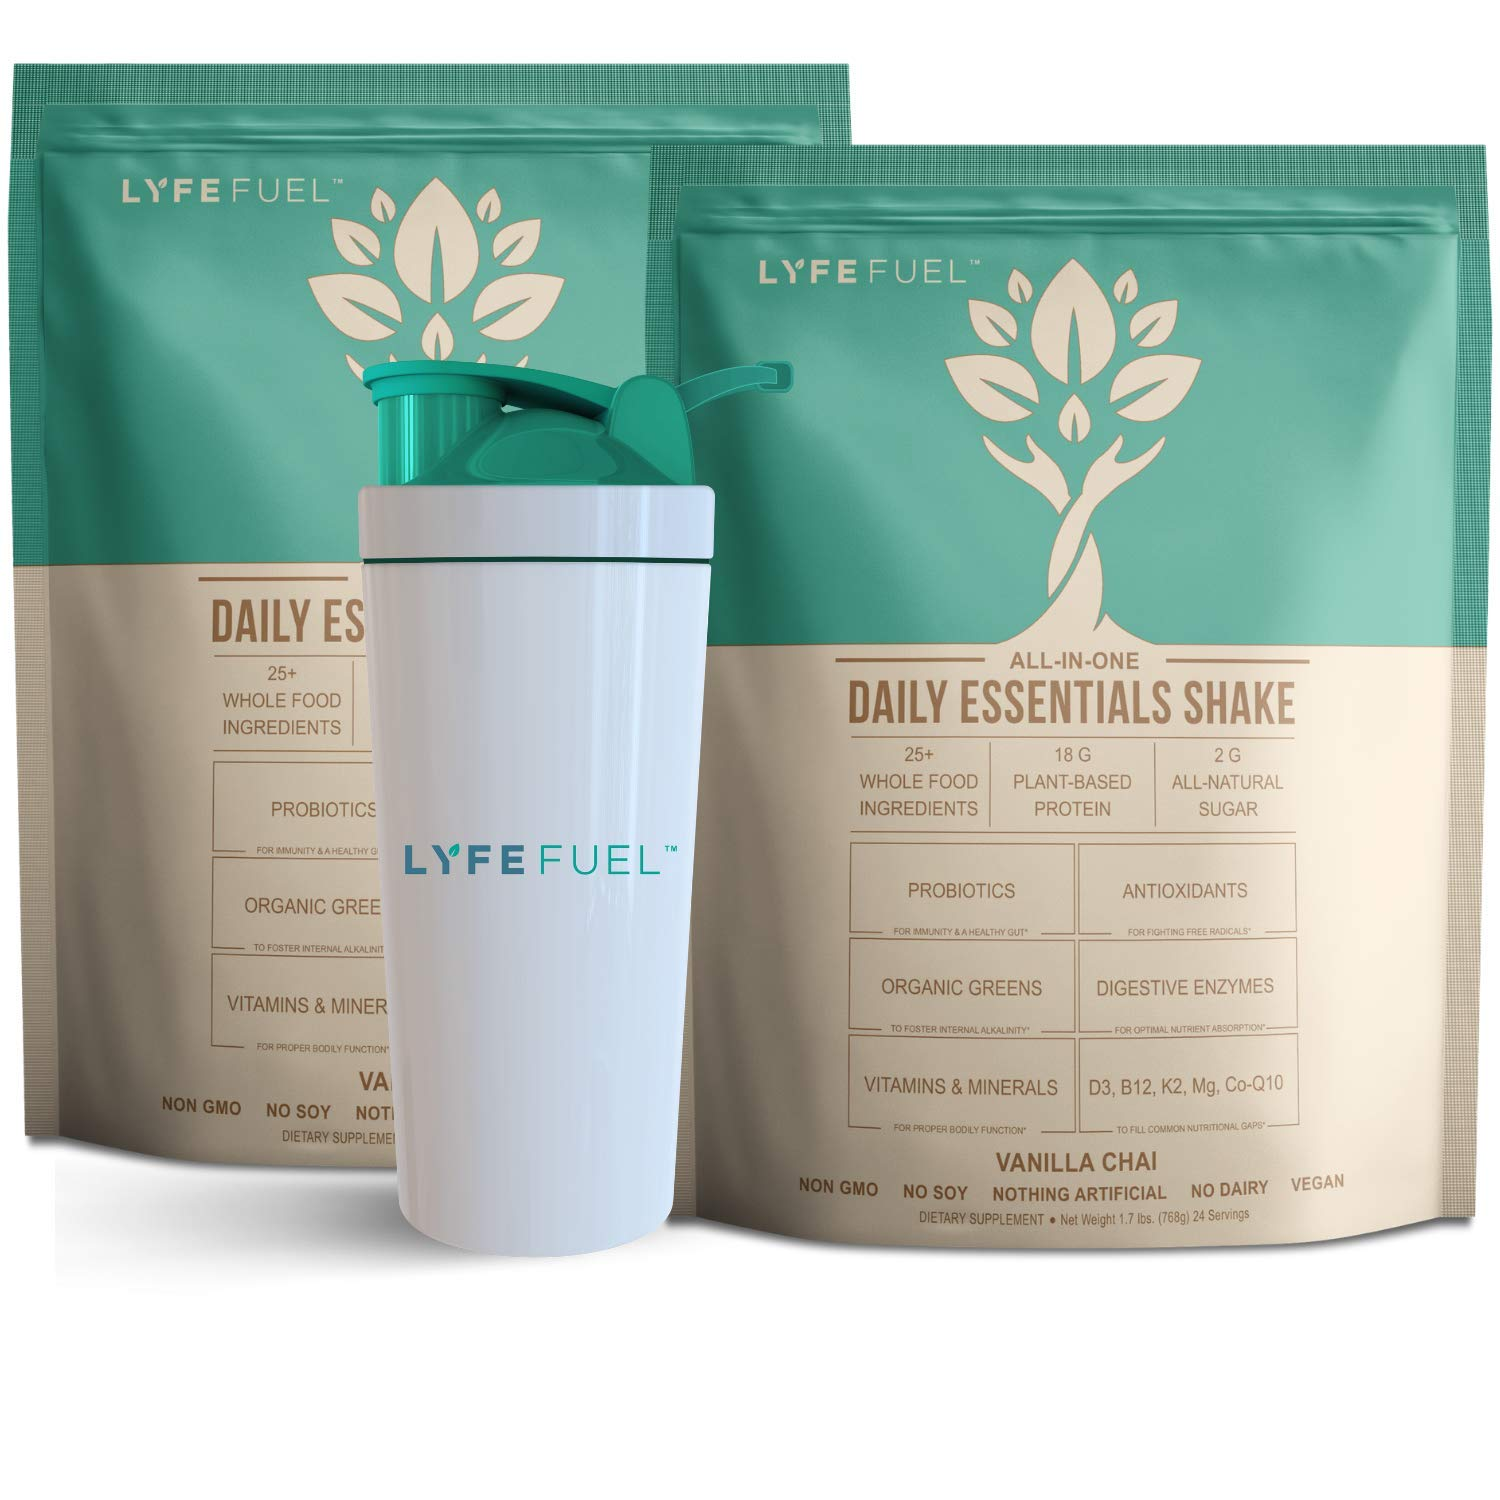 LYFE FUEL Transformation Bundle - Meal Replacement Shakes for Optimal Nutrition - Support a Whole Food Plant-Based Diet & Weight Loss - Vegan, Keto, Low Carb, Soy Free (2 Bags Vanilla Chai, 48 Meals) by LYFE Fuel